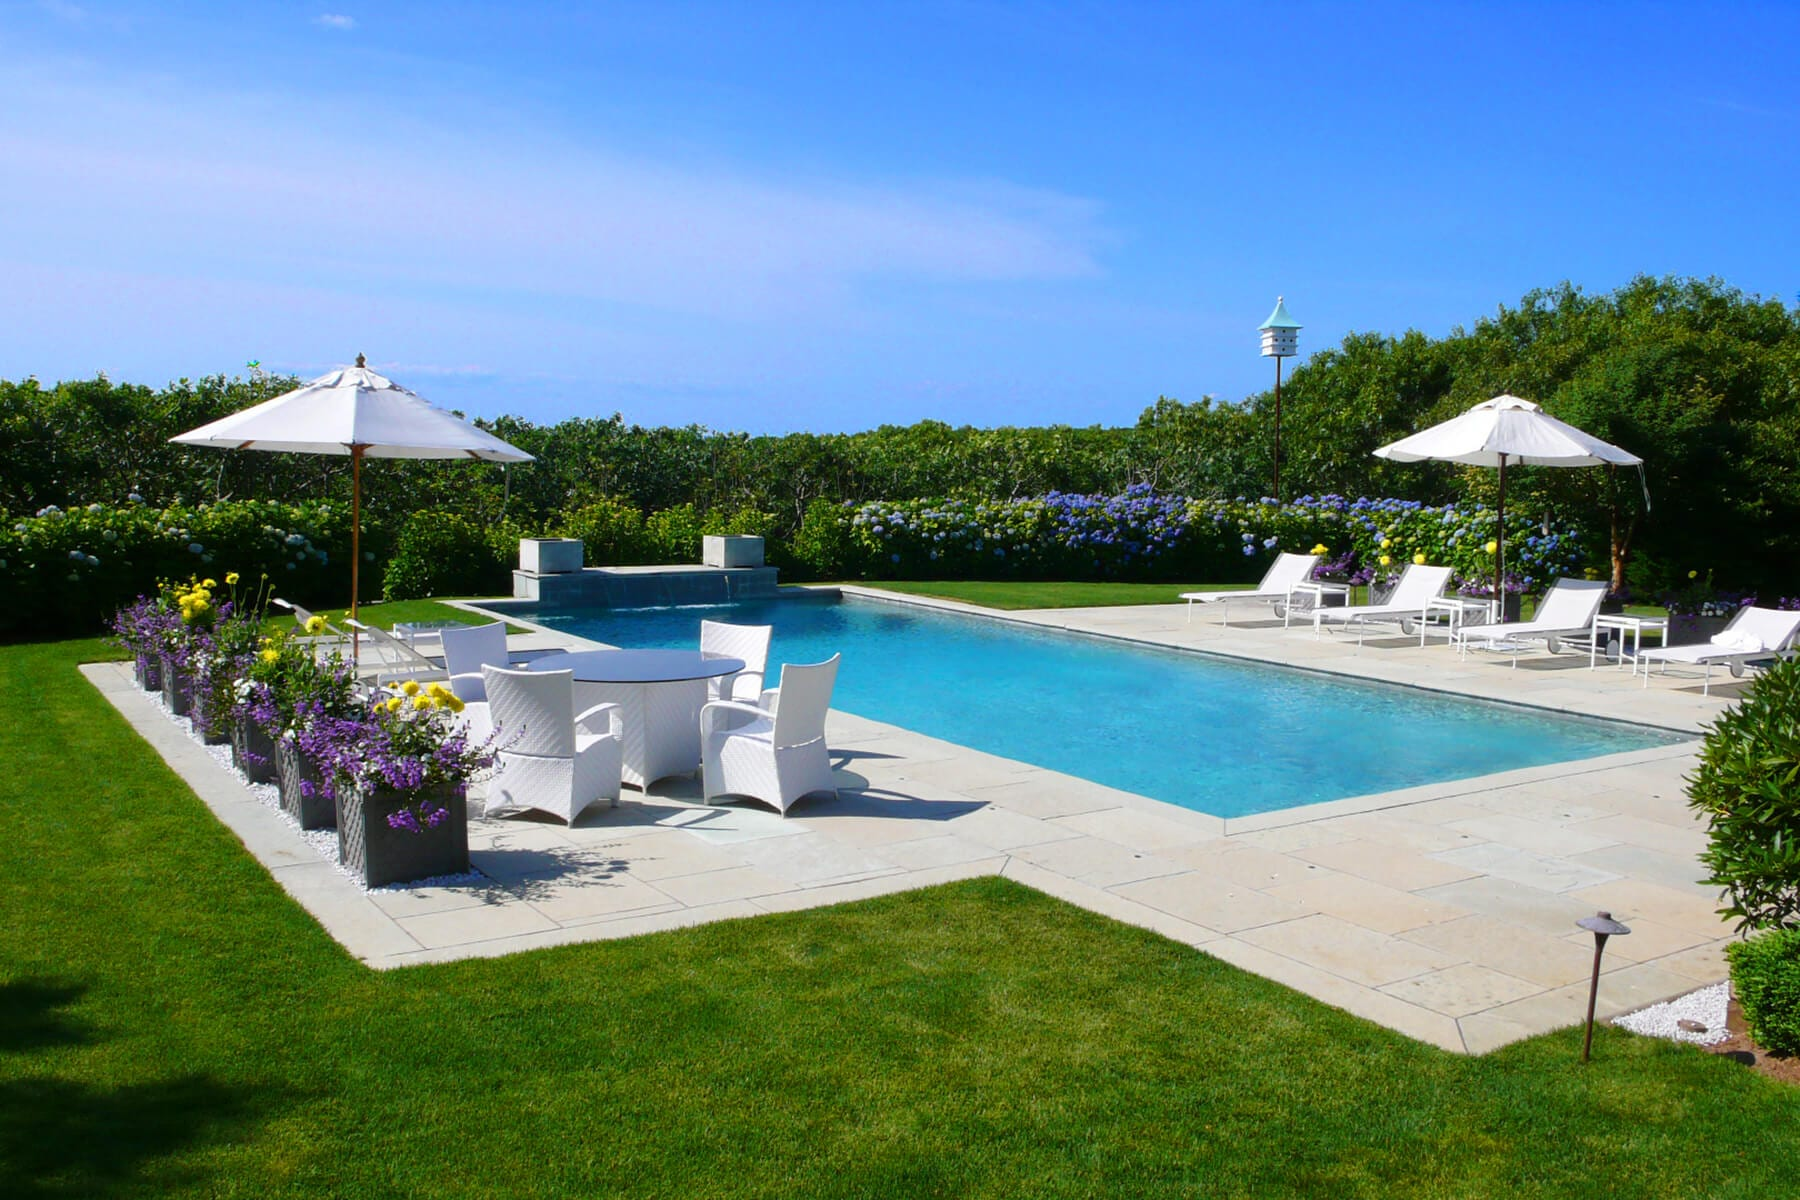 Backyard residebest-mosquito-control-for-yardntial landscaping including a pool and flowers